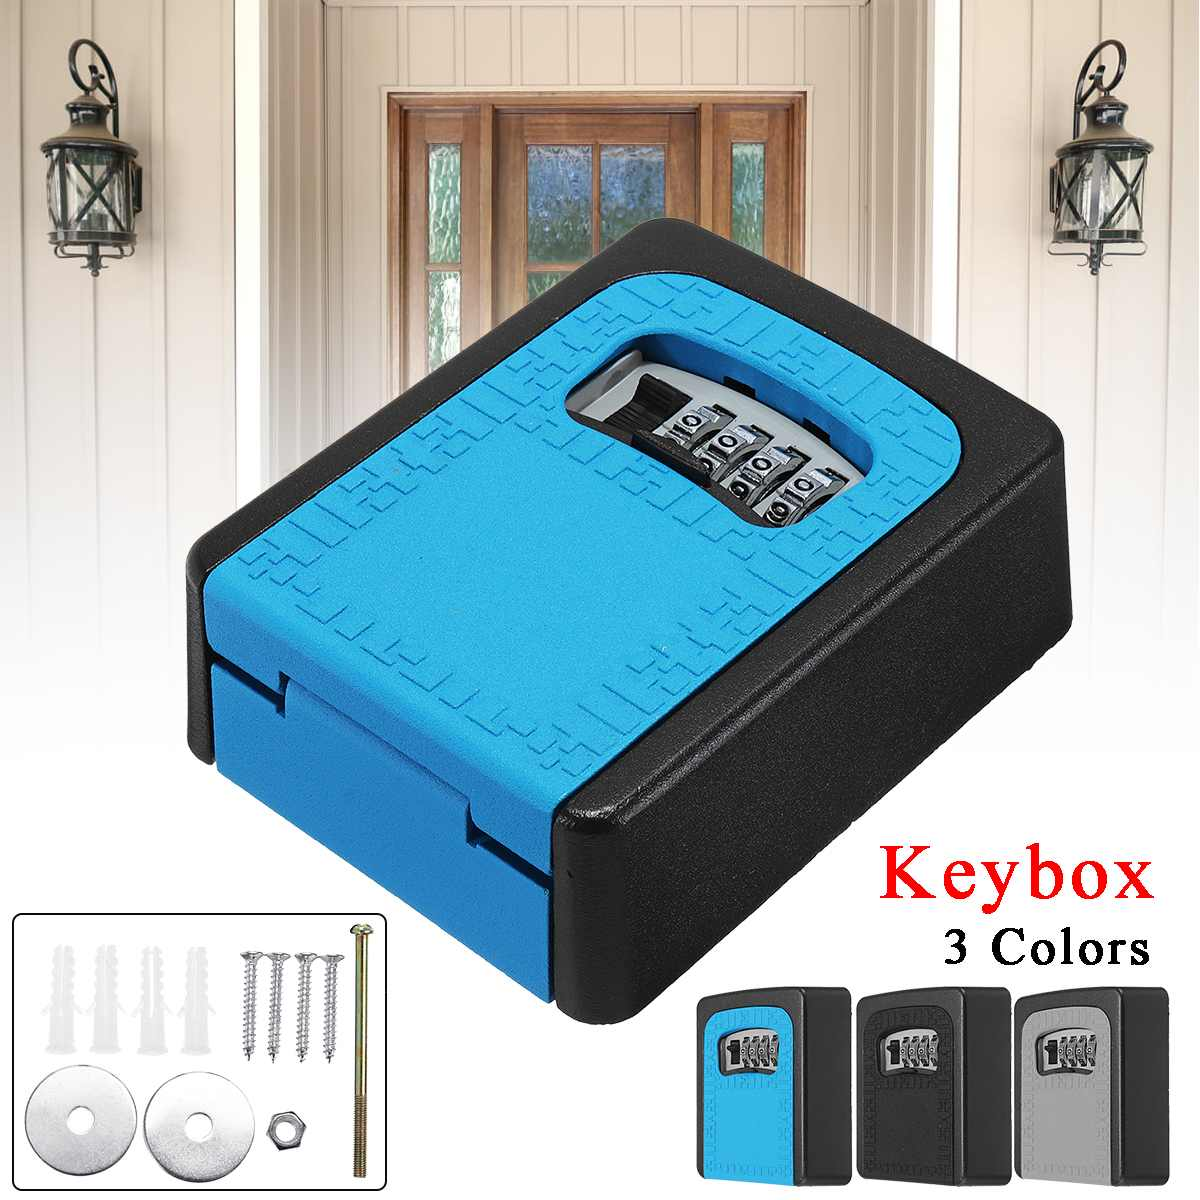 4 Digit Key Box Password Combination Security Storage Safe Waterproof Lock Wall Home Keys Car Keys Protect Password Lock Outdoor